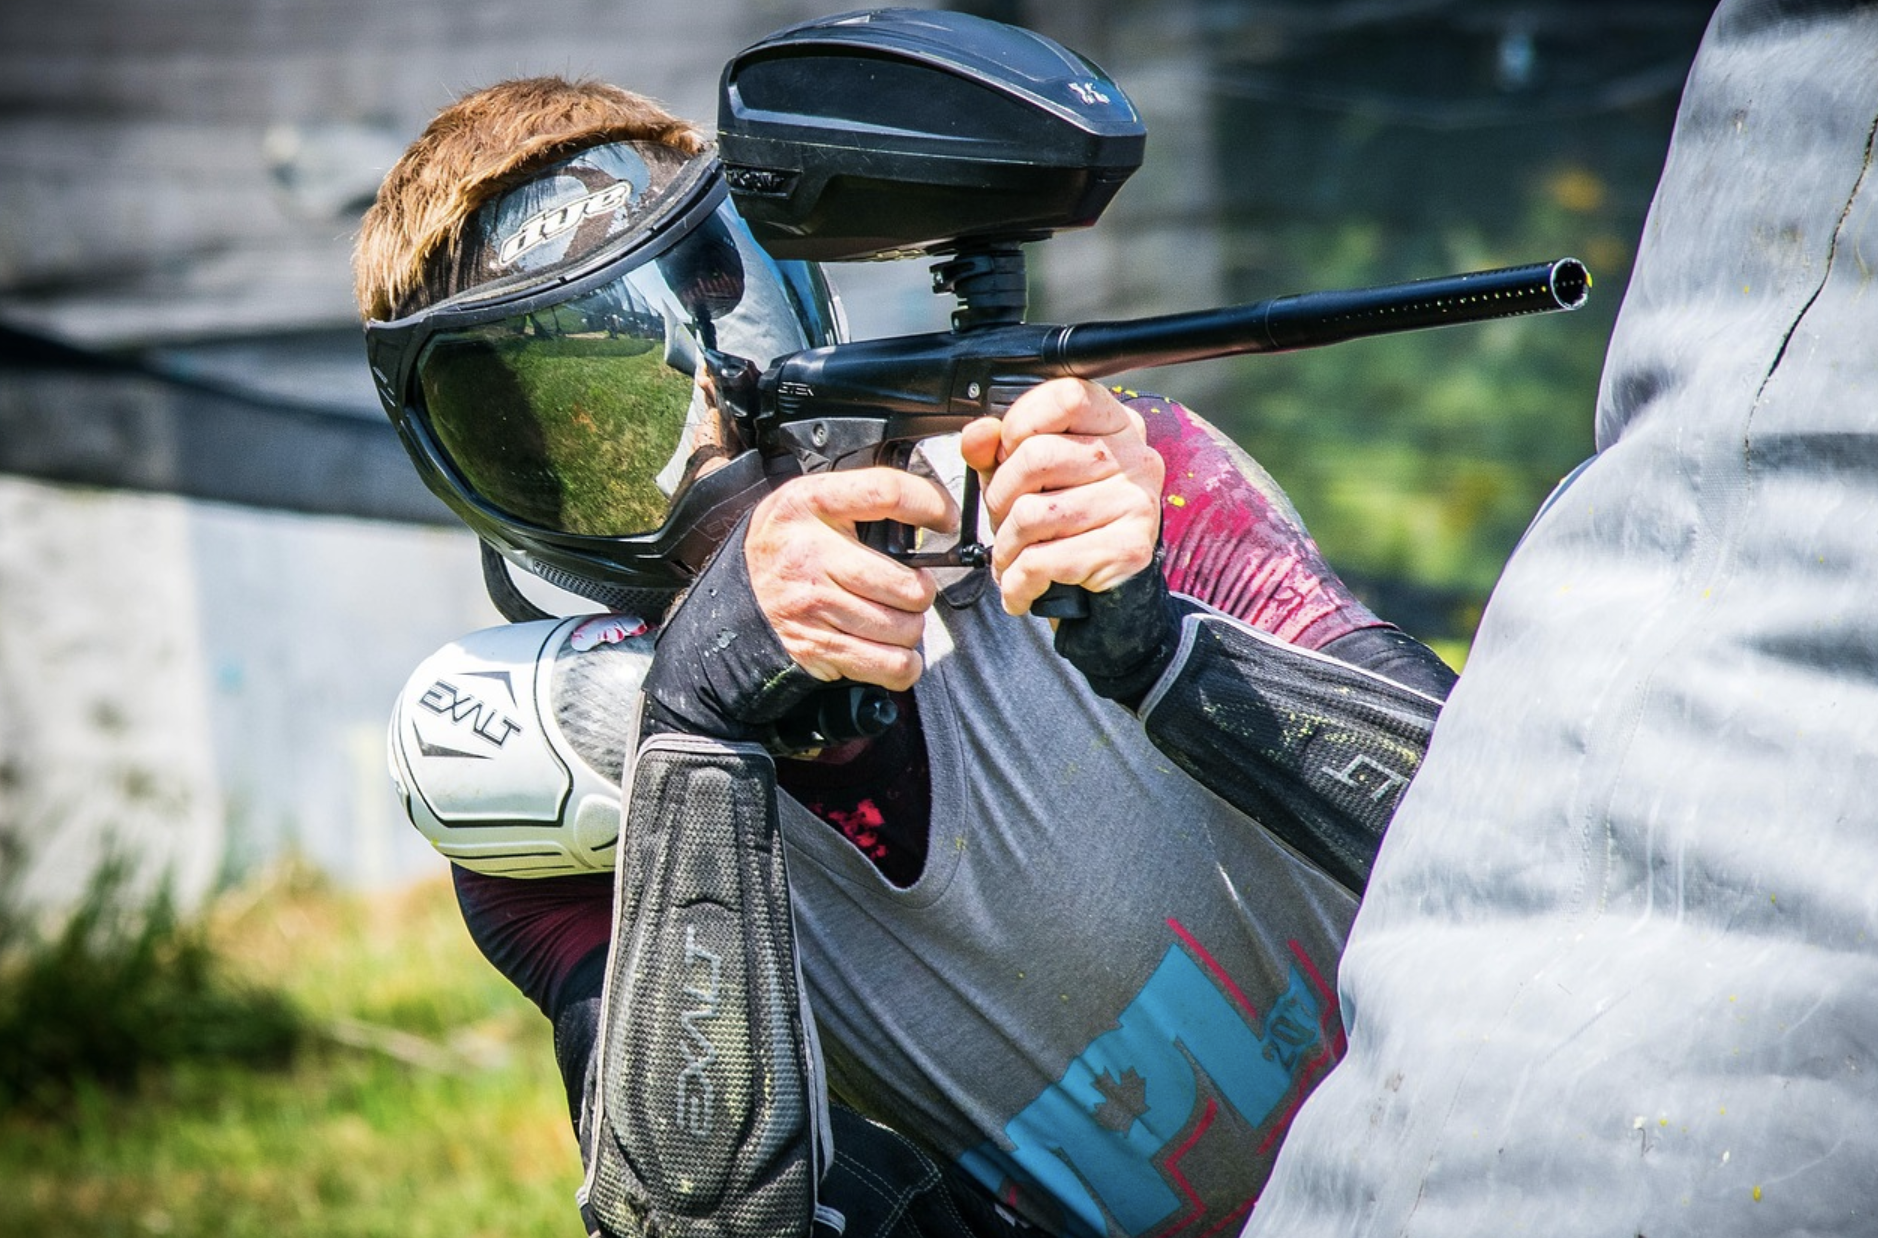 Planet Eclipse CS2 Paintball Gun Review: The Best of the Best